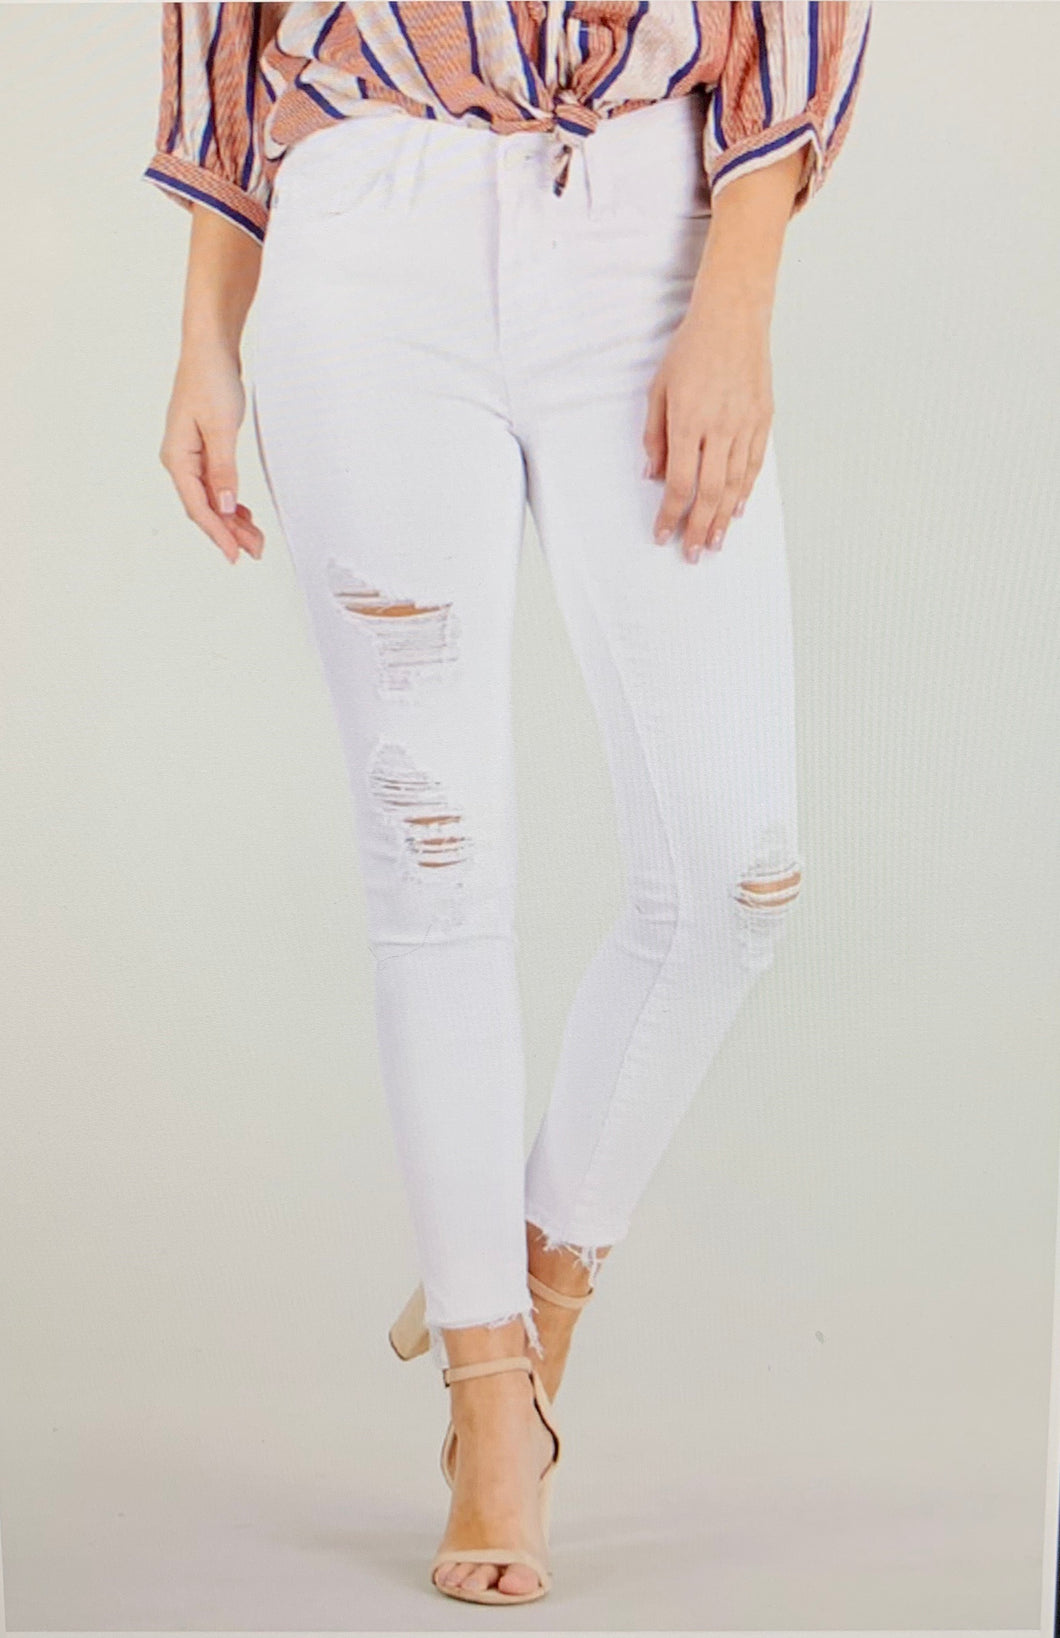 Jessica Distressed White Jeans